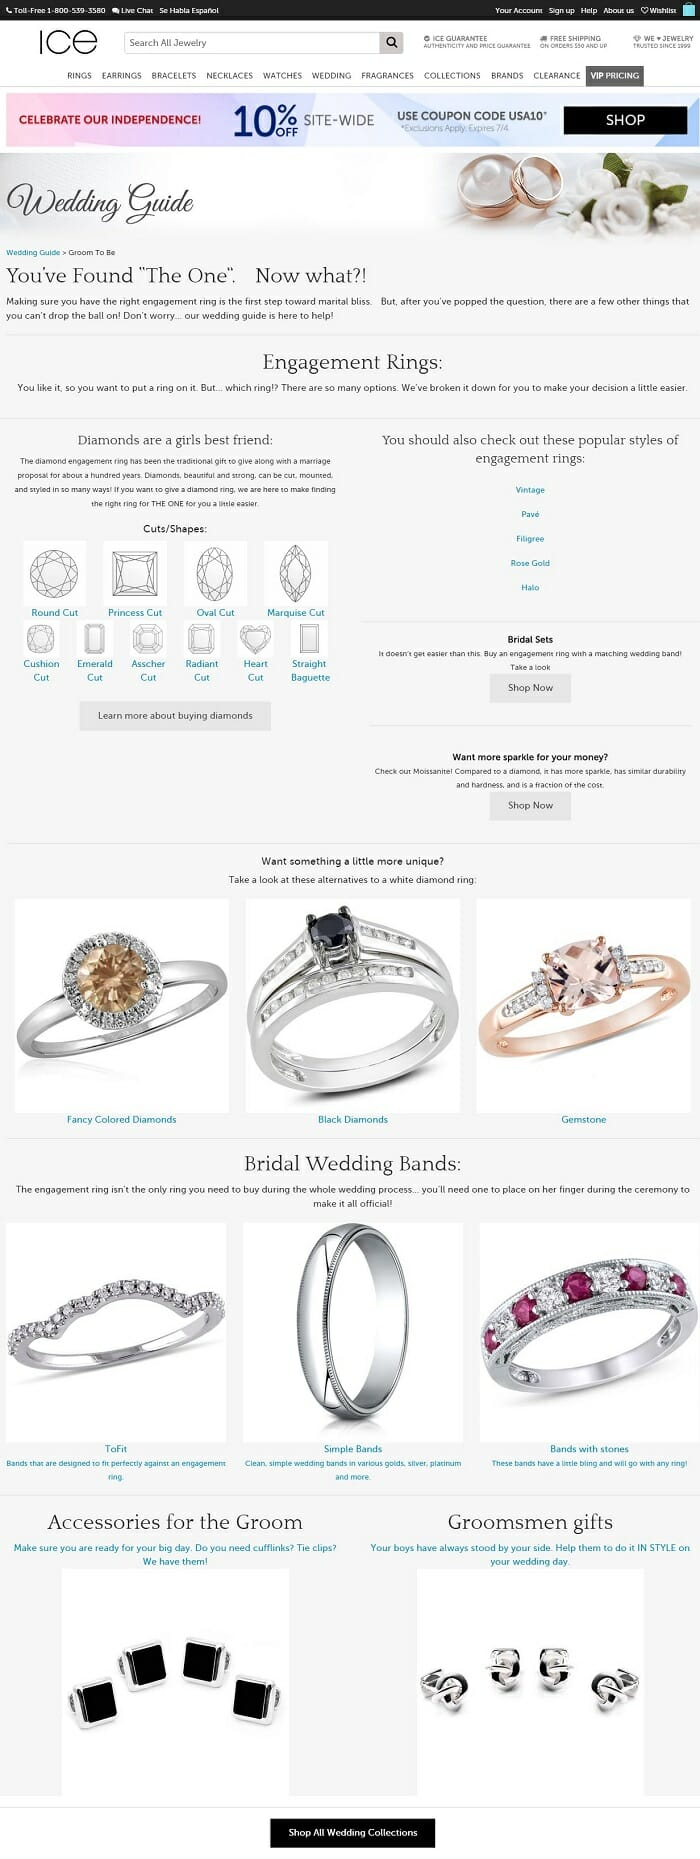 Ice_Wedding_guide_ecommerce_hub_page.jpeg